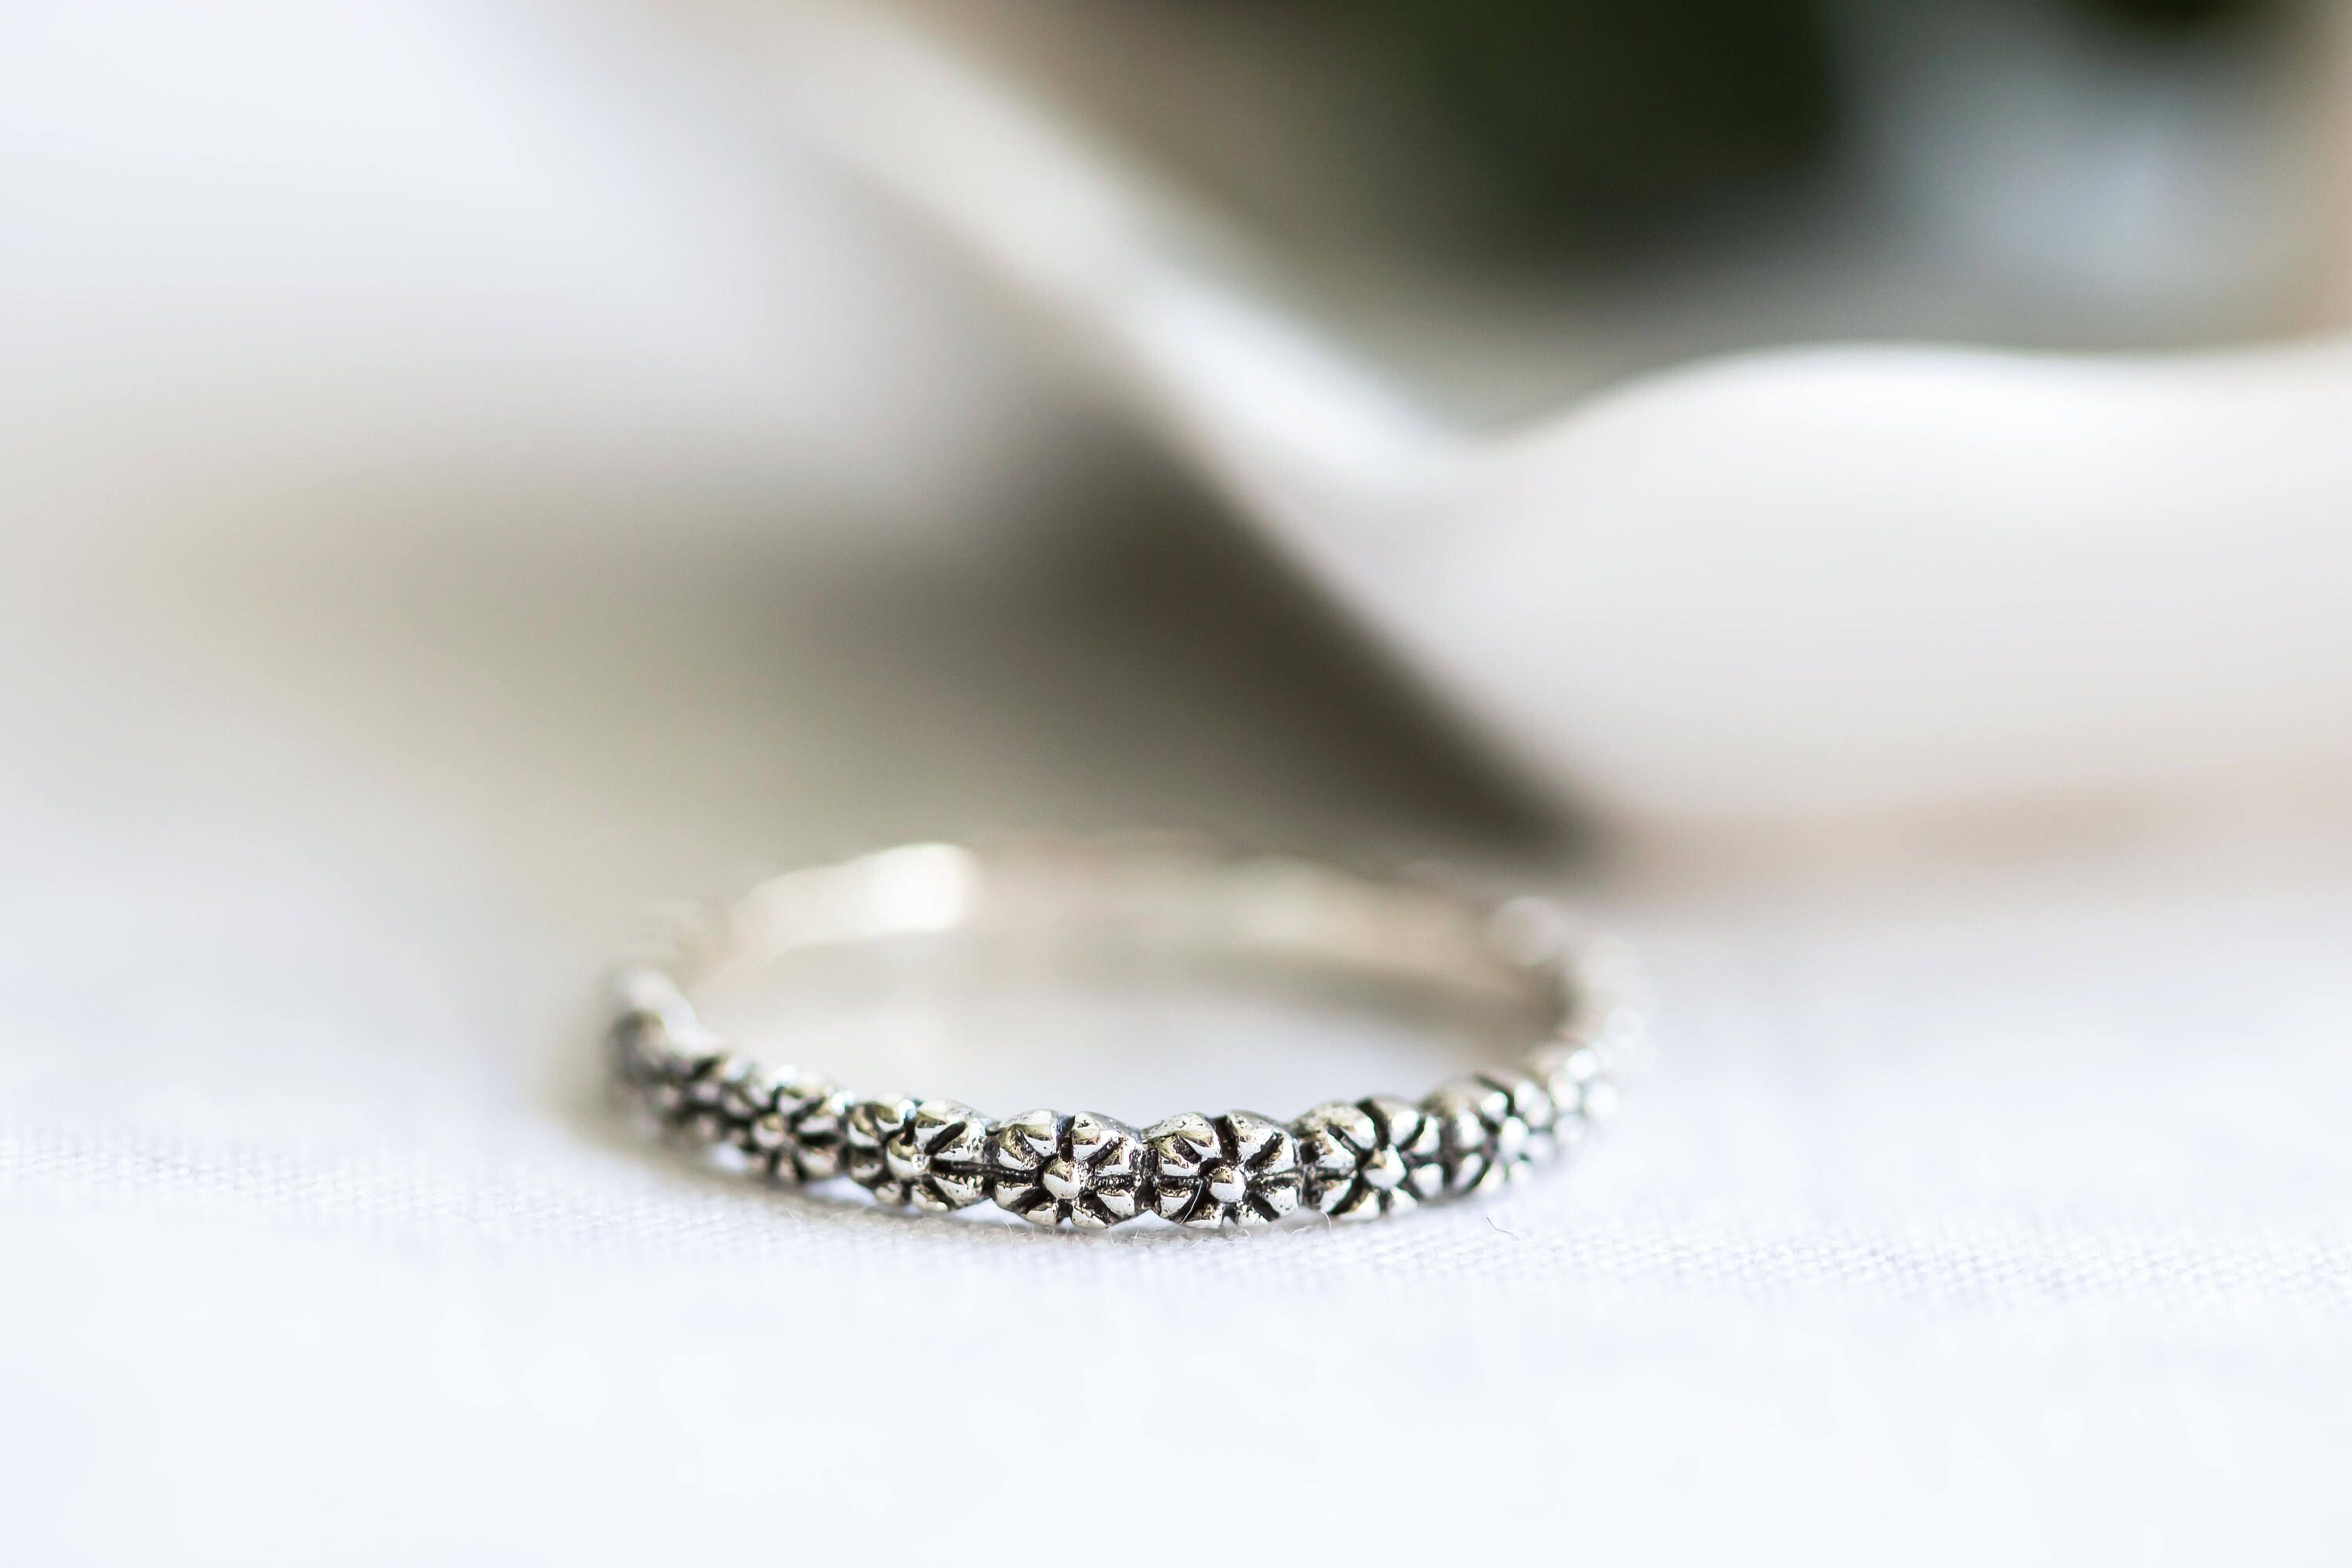 Daisy ring i pick you daisy ring sterling silver baby flower ring daisy ring i pick you daisy ring sterling silver baby flower ring izmirmasajfo